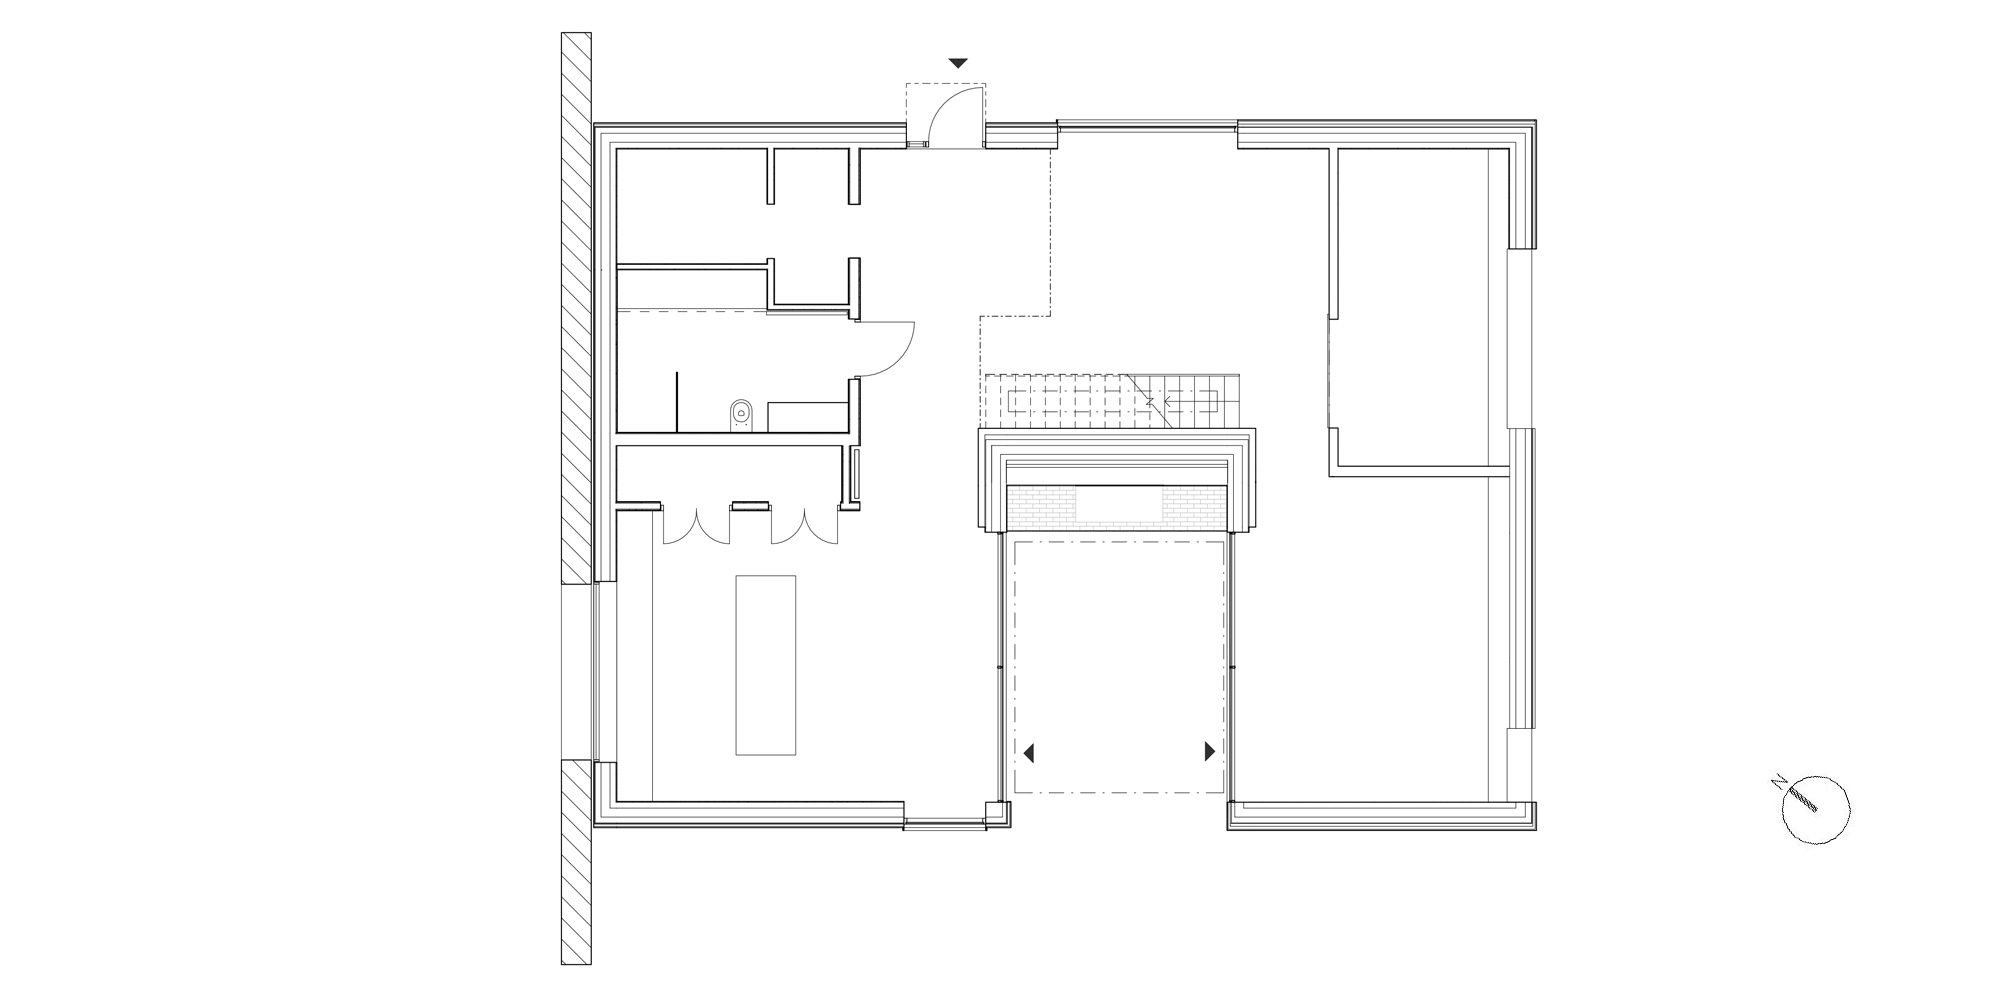 Ground Floor Plan © Snøhetta